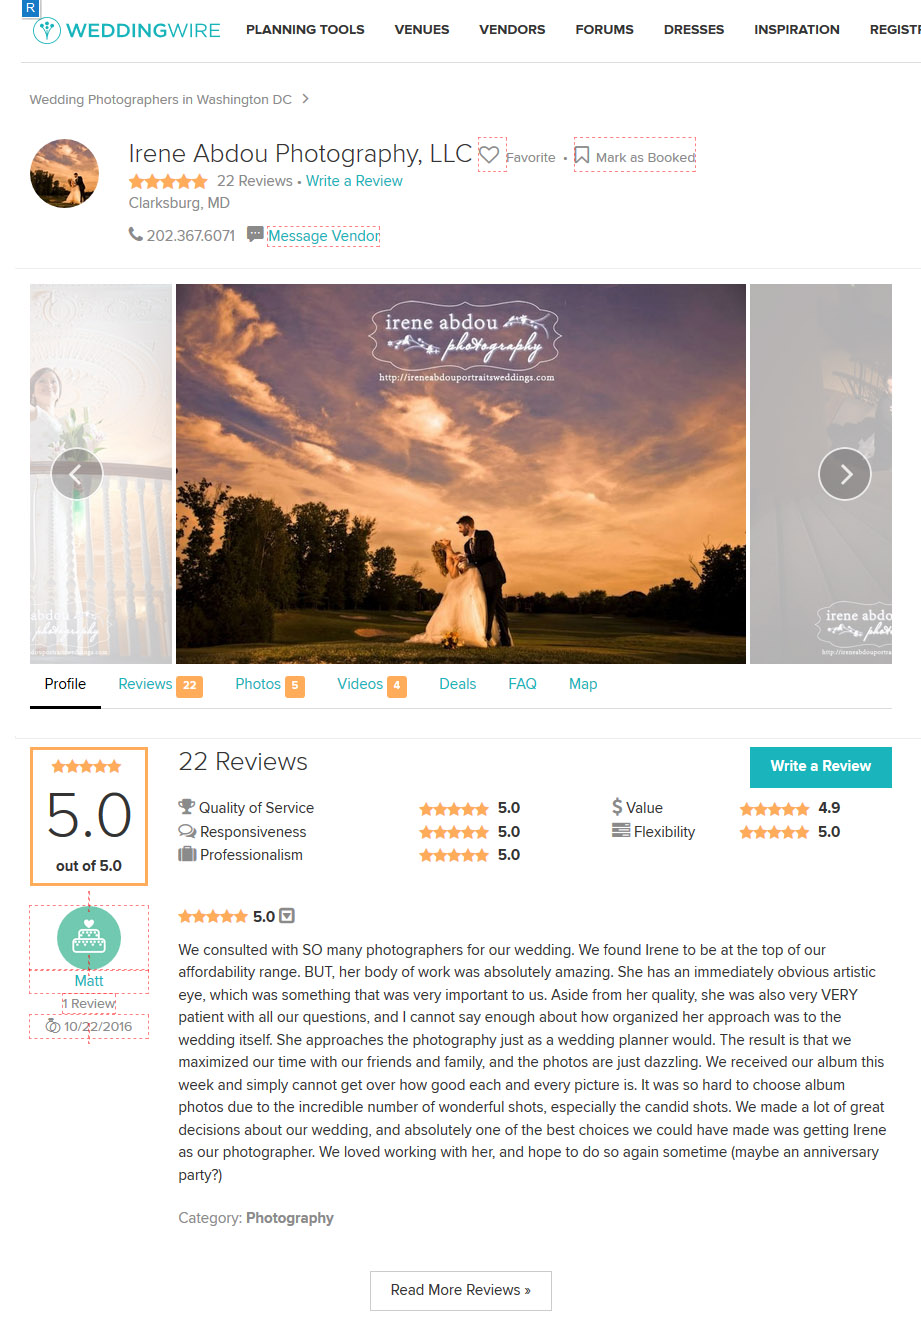 Read our Washington DC wedding photographer reviews on WeddingWire